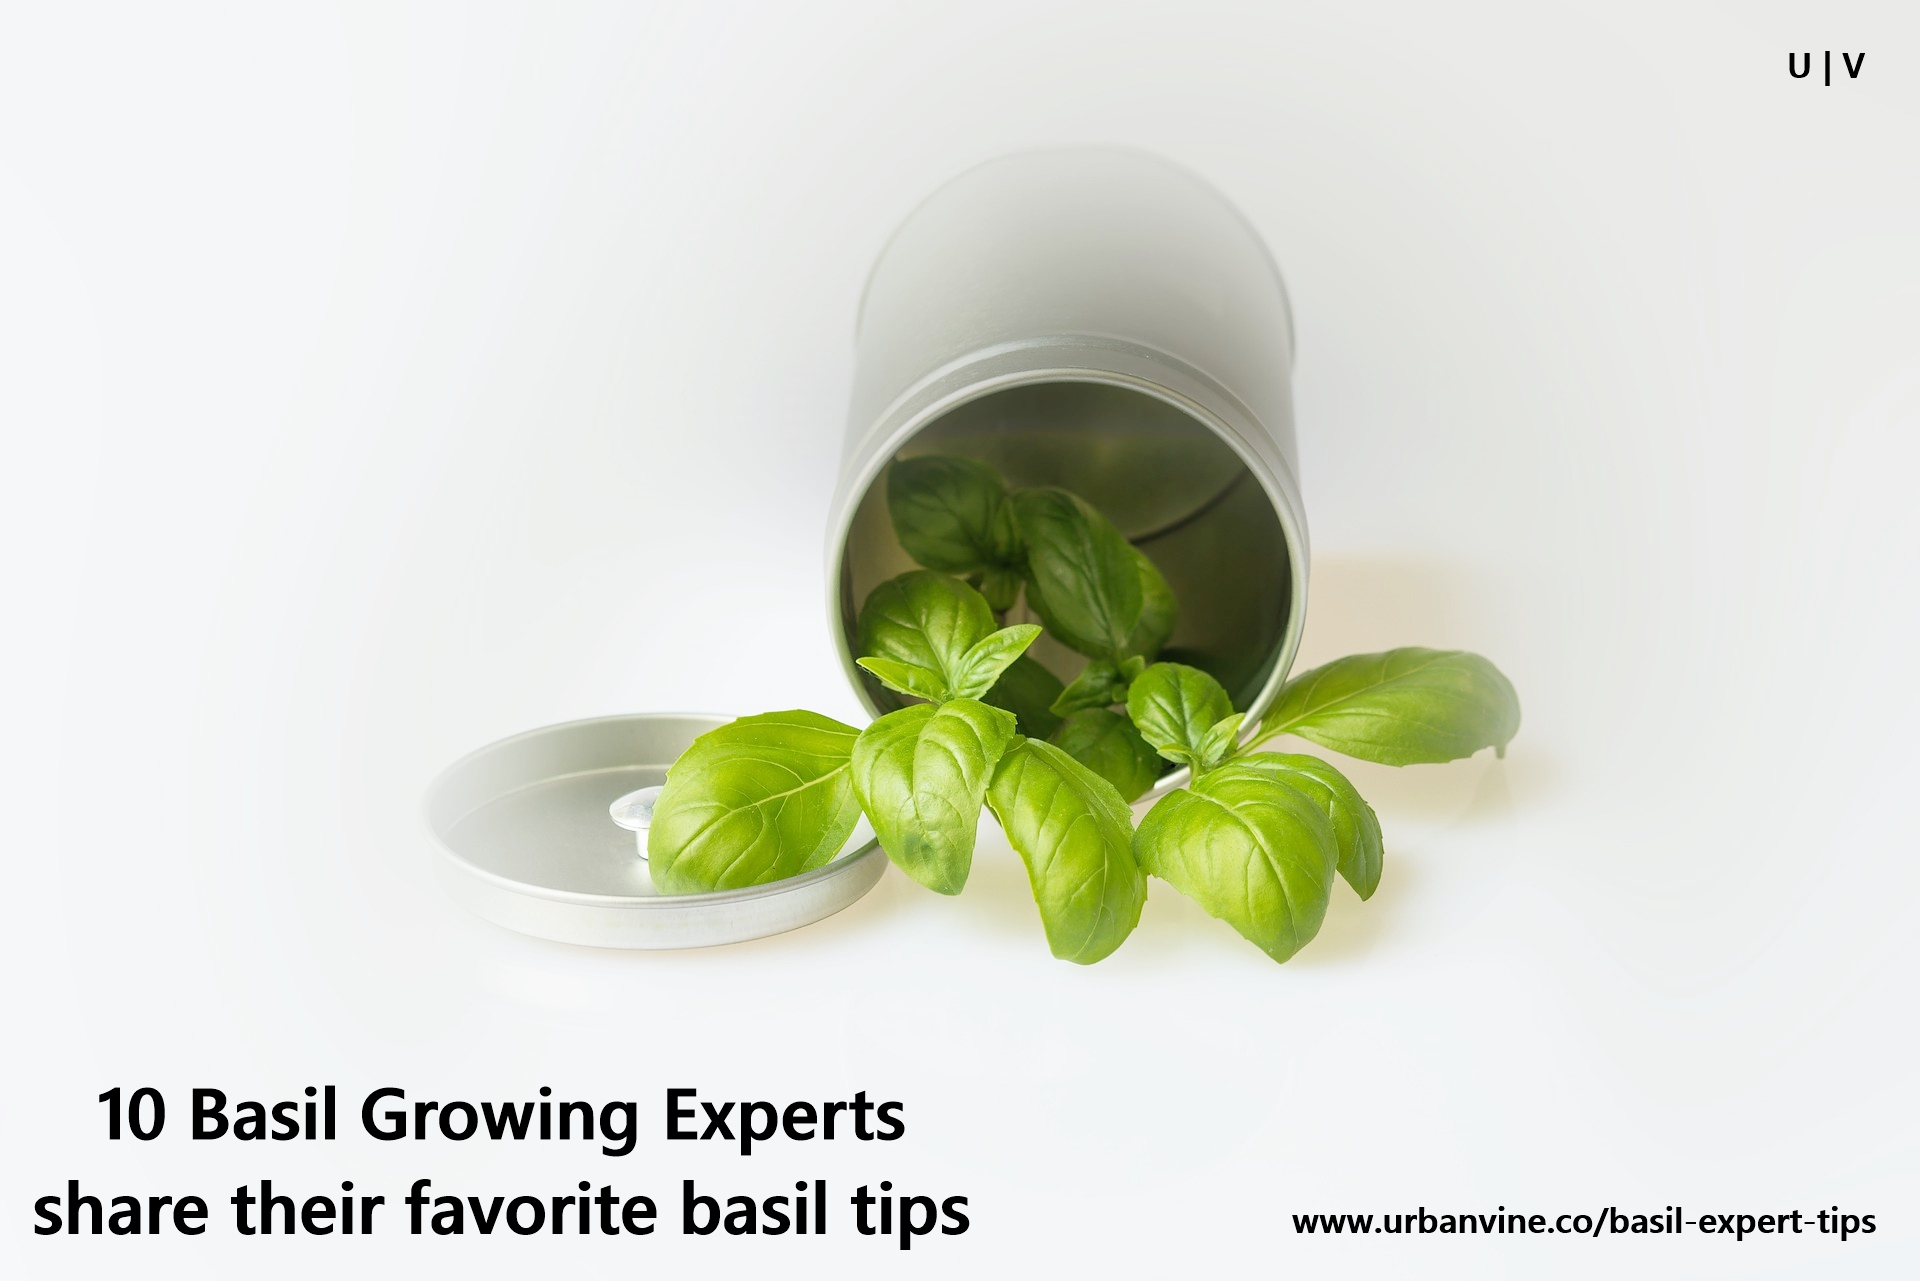 Are you missing the basics? 11 Basil Growing Experts share tips to grow better basil